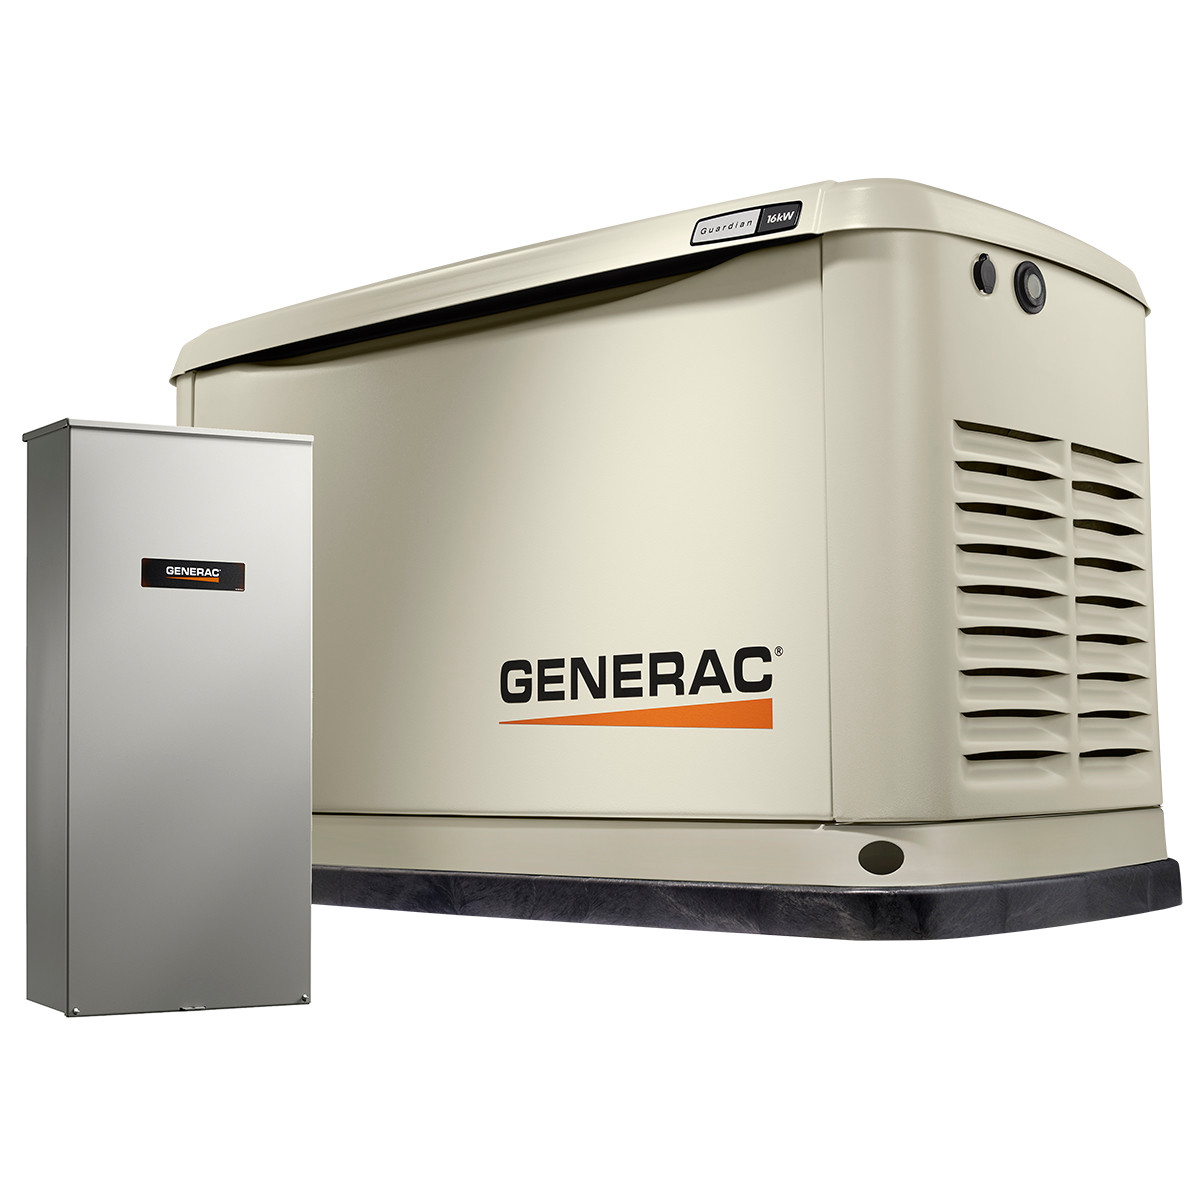 Generac 70391 20kW Guardian Generator with Wi-Fi & 200A SE Transfer Switch